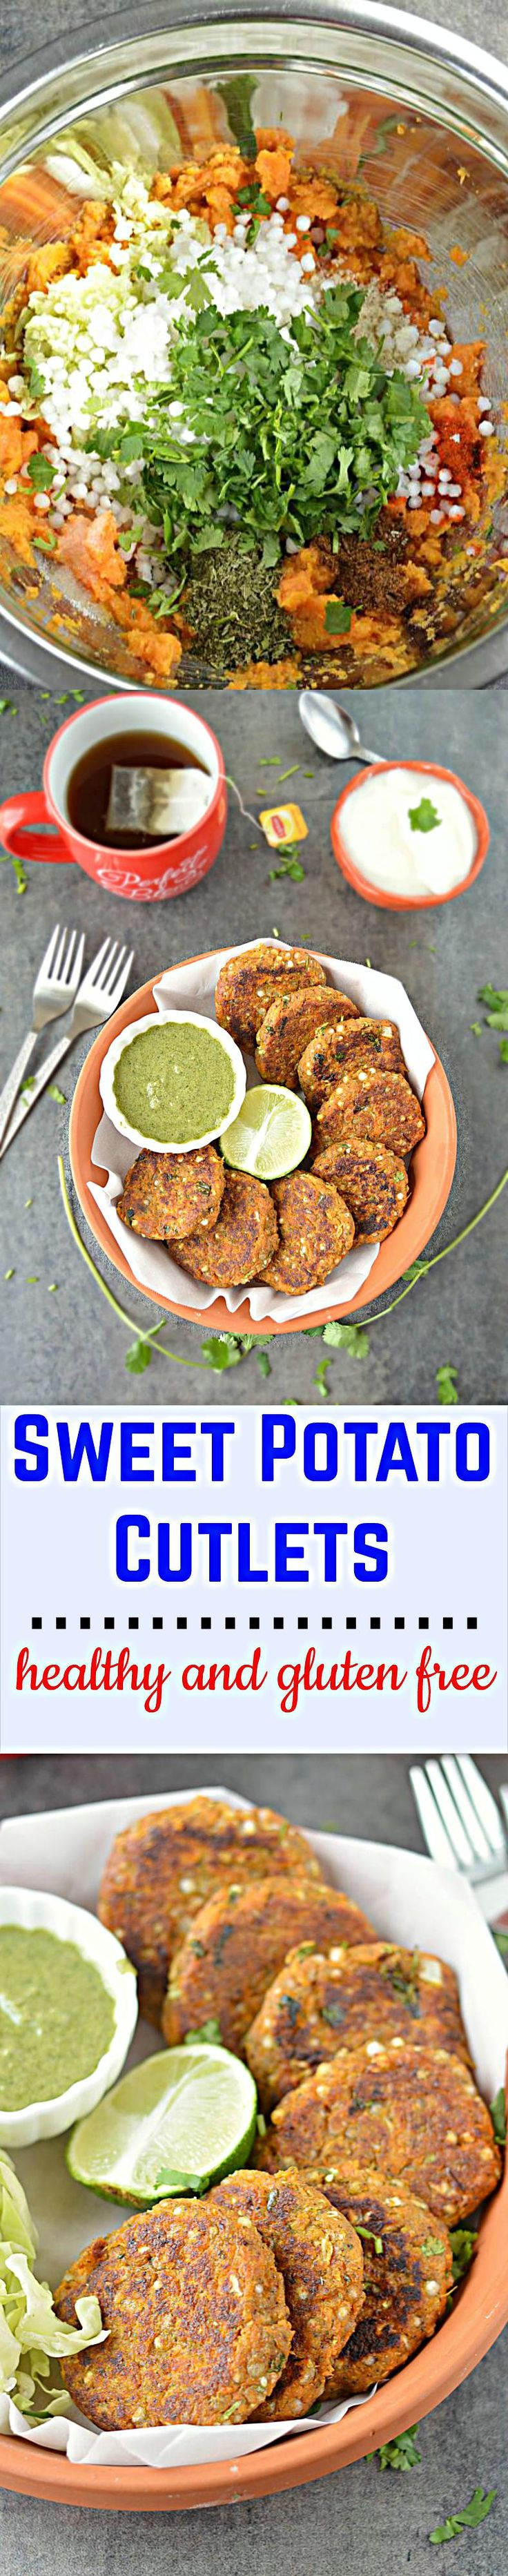 Sweet potato cutlet or Shakarkandi cutlets - a healthy, gluten-free, no onion no garlic cutlet. Super yum and easy to prepare!! Just toss everything together, mix, shape and cook.